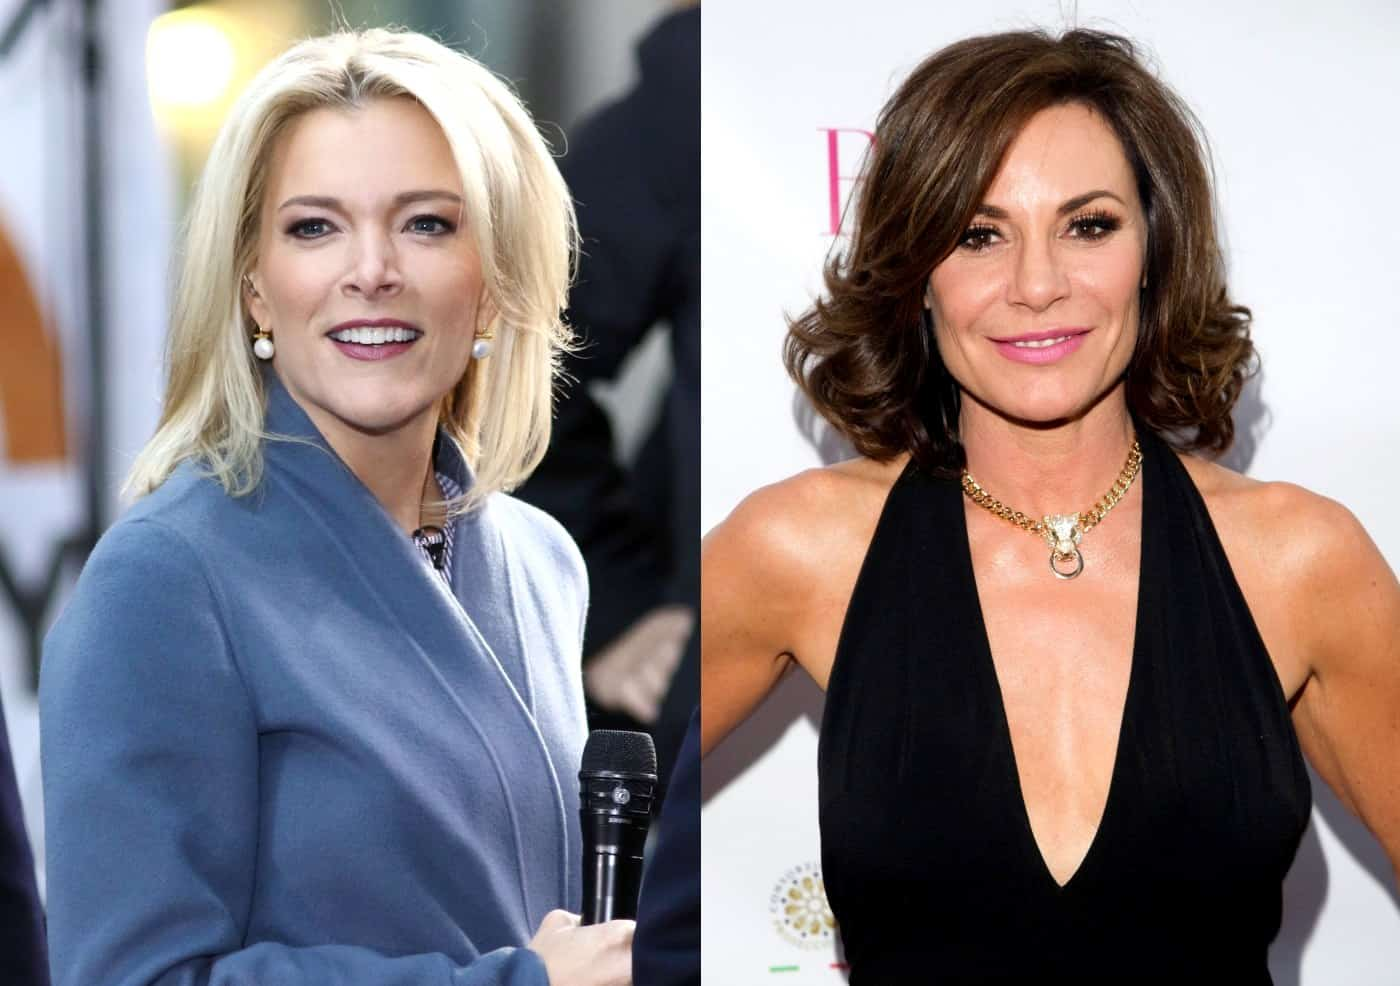 Megyn Kelly apologizes to RHONY's Luann de Lesseps